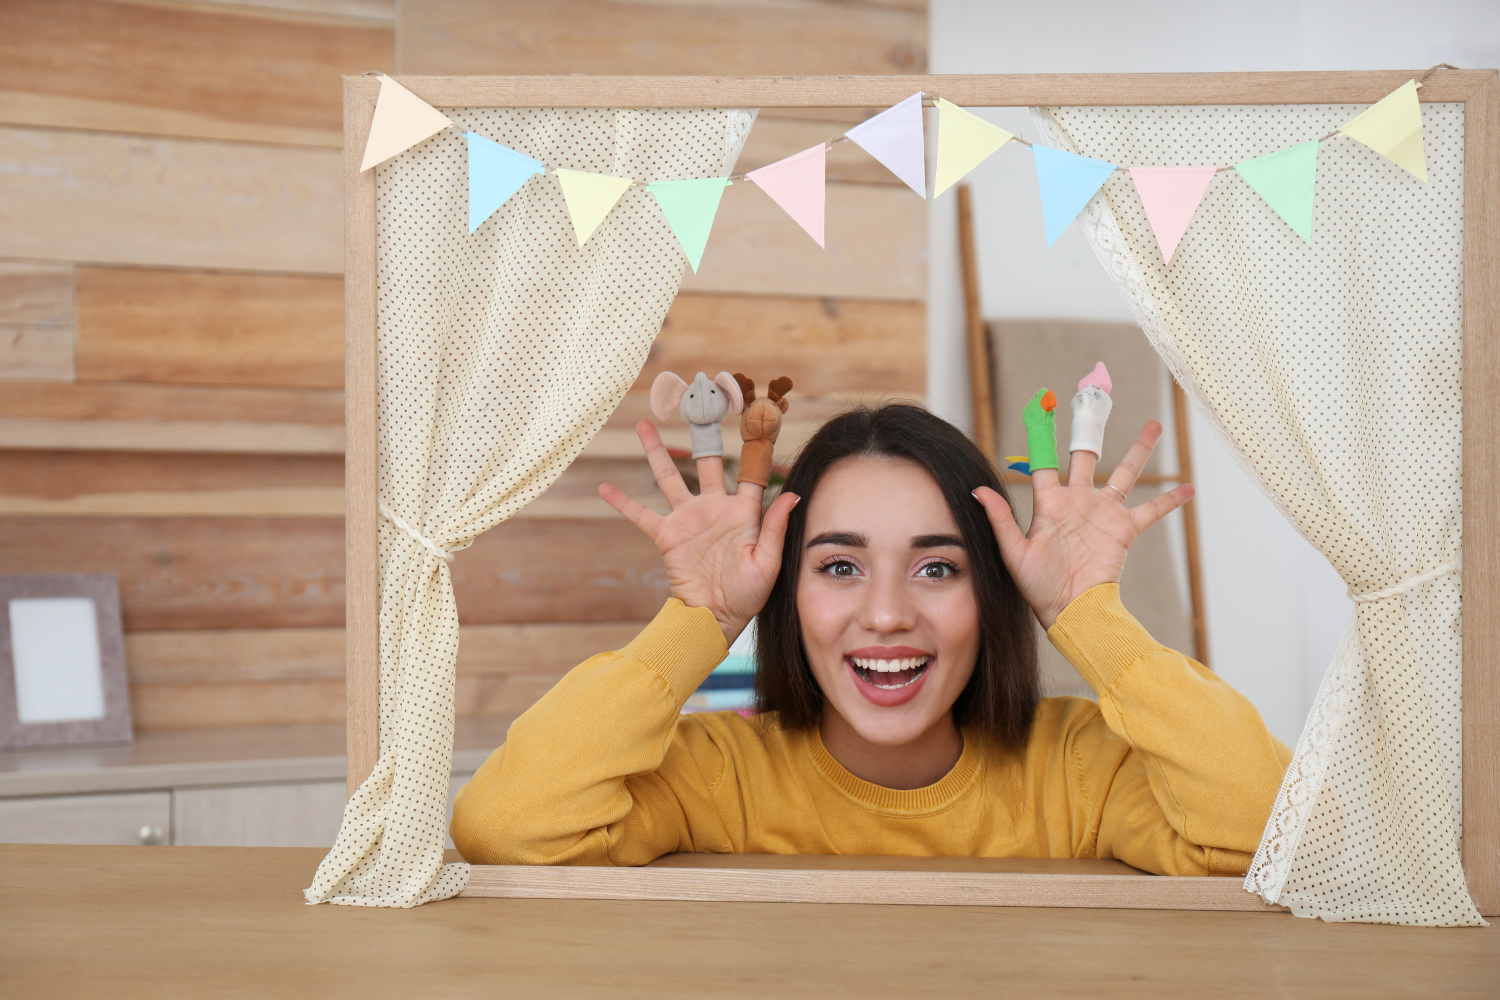 Puppet Show at Home